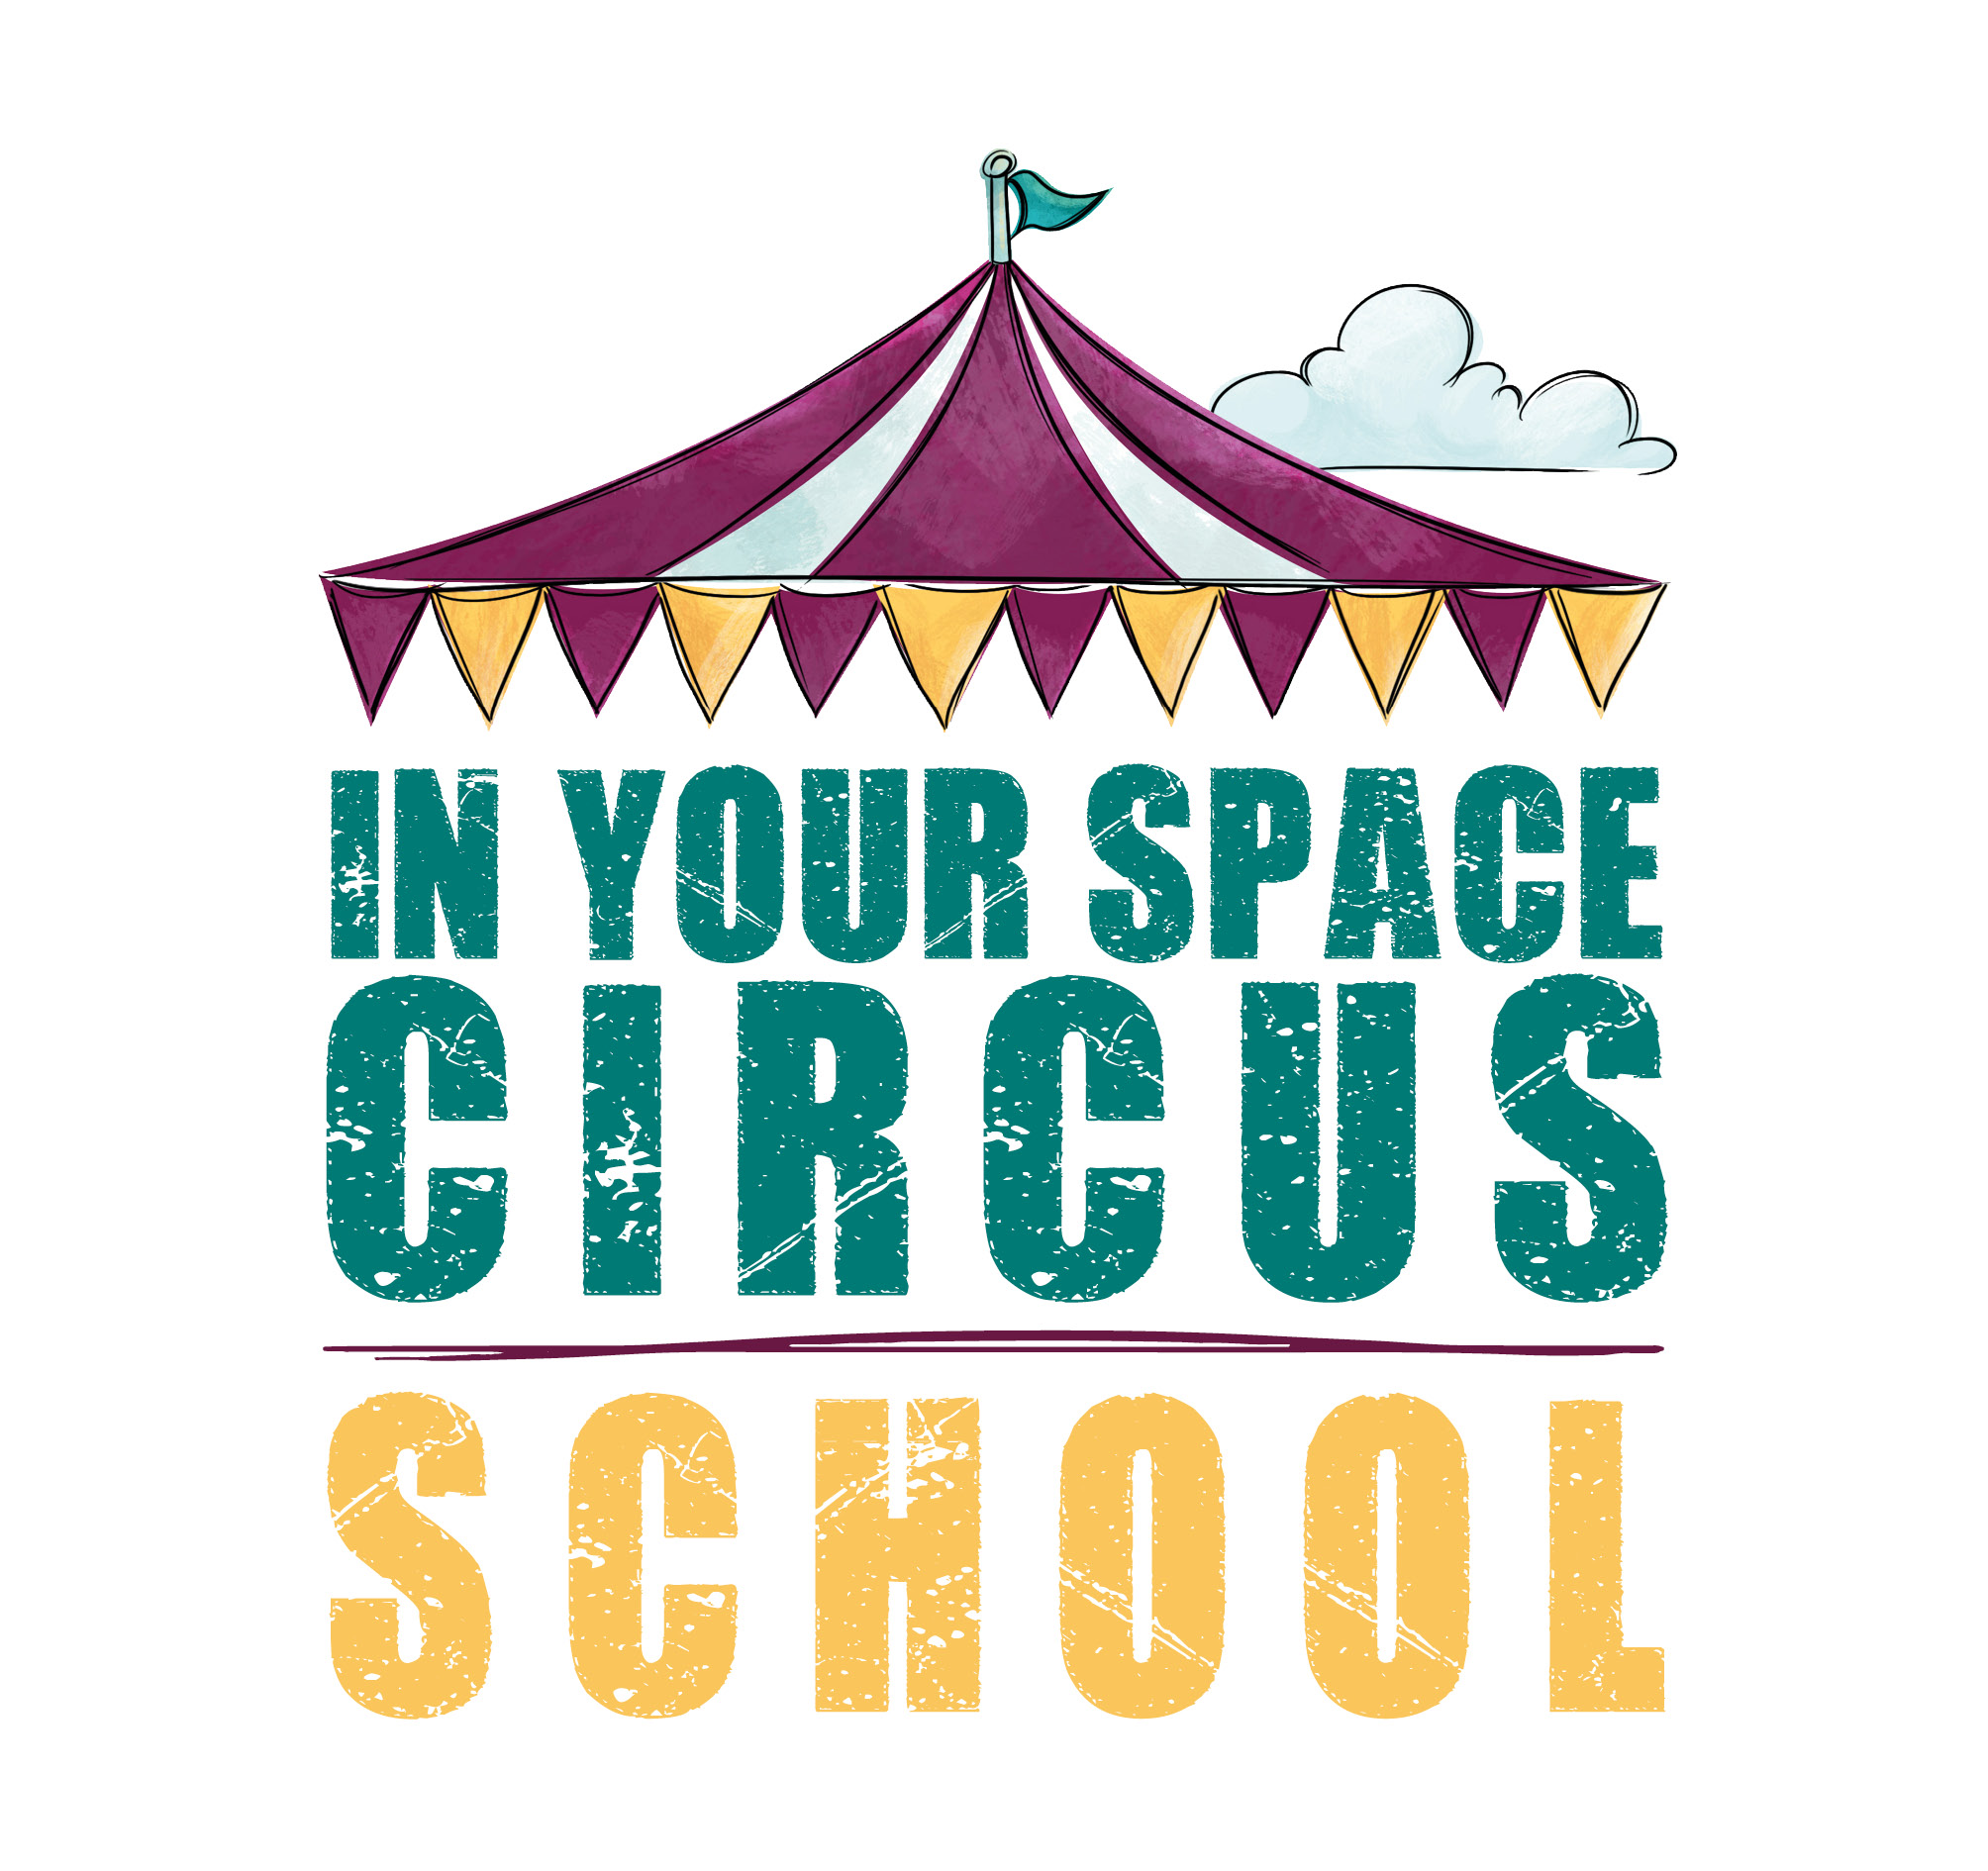 In Your Space Circus - Outreach Circus